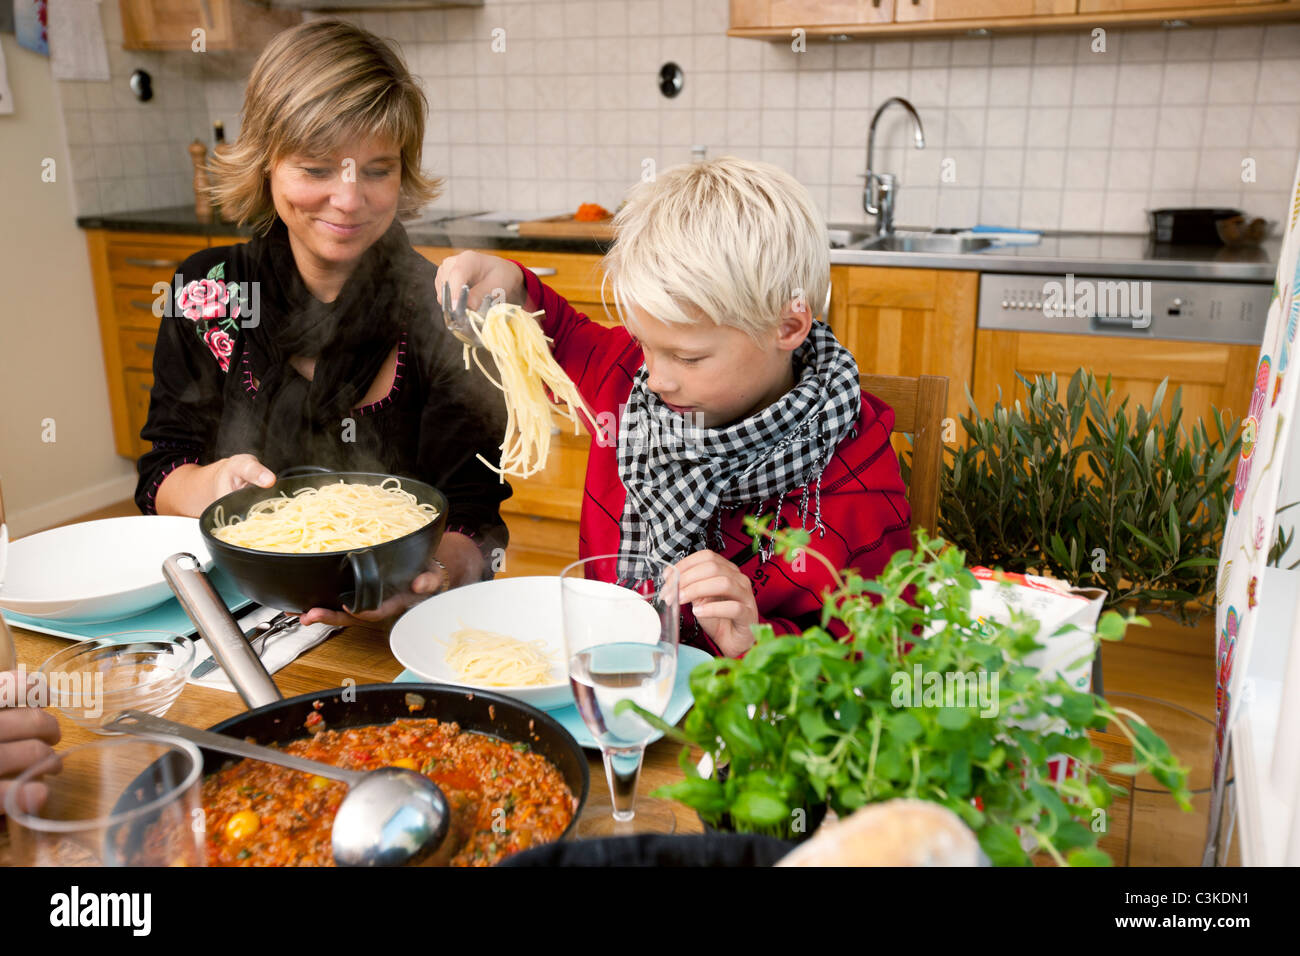 Mother and son eating spaghetti - Stock Image